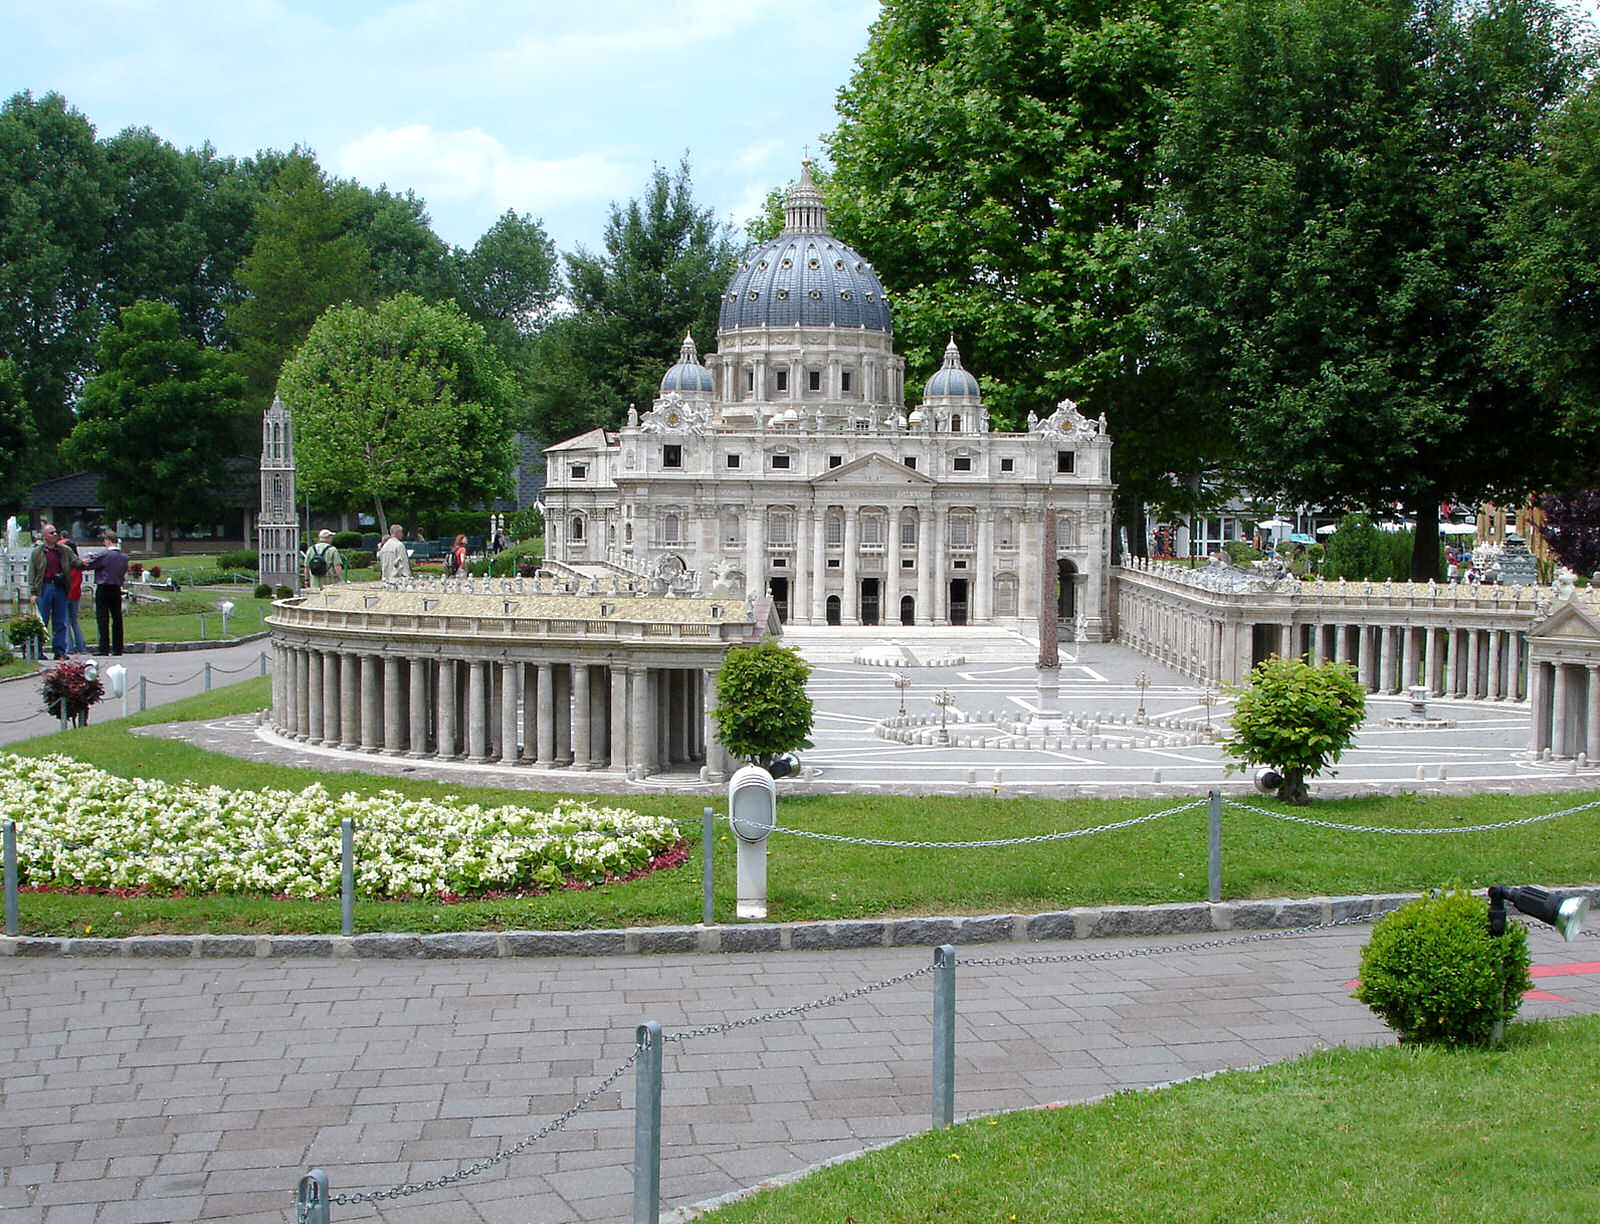 Model of the Model of the Vatican's St. Peter's basilica at Minimundus, Klagenfurt, Austria